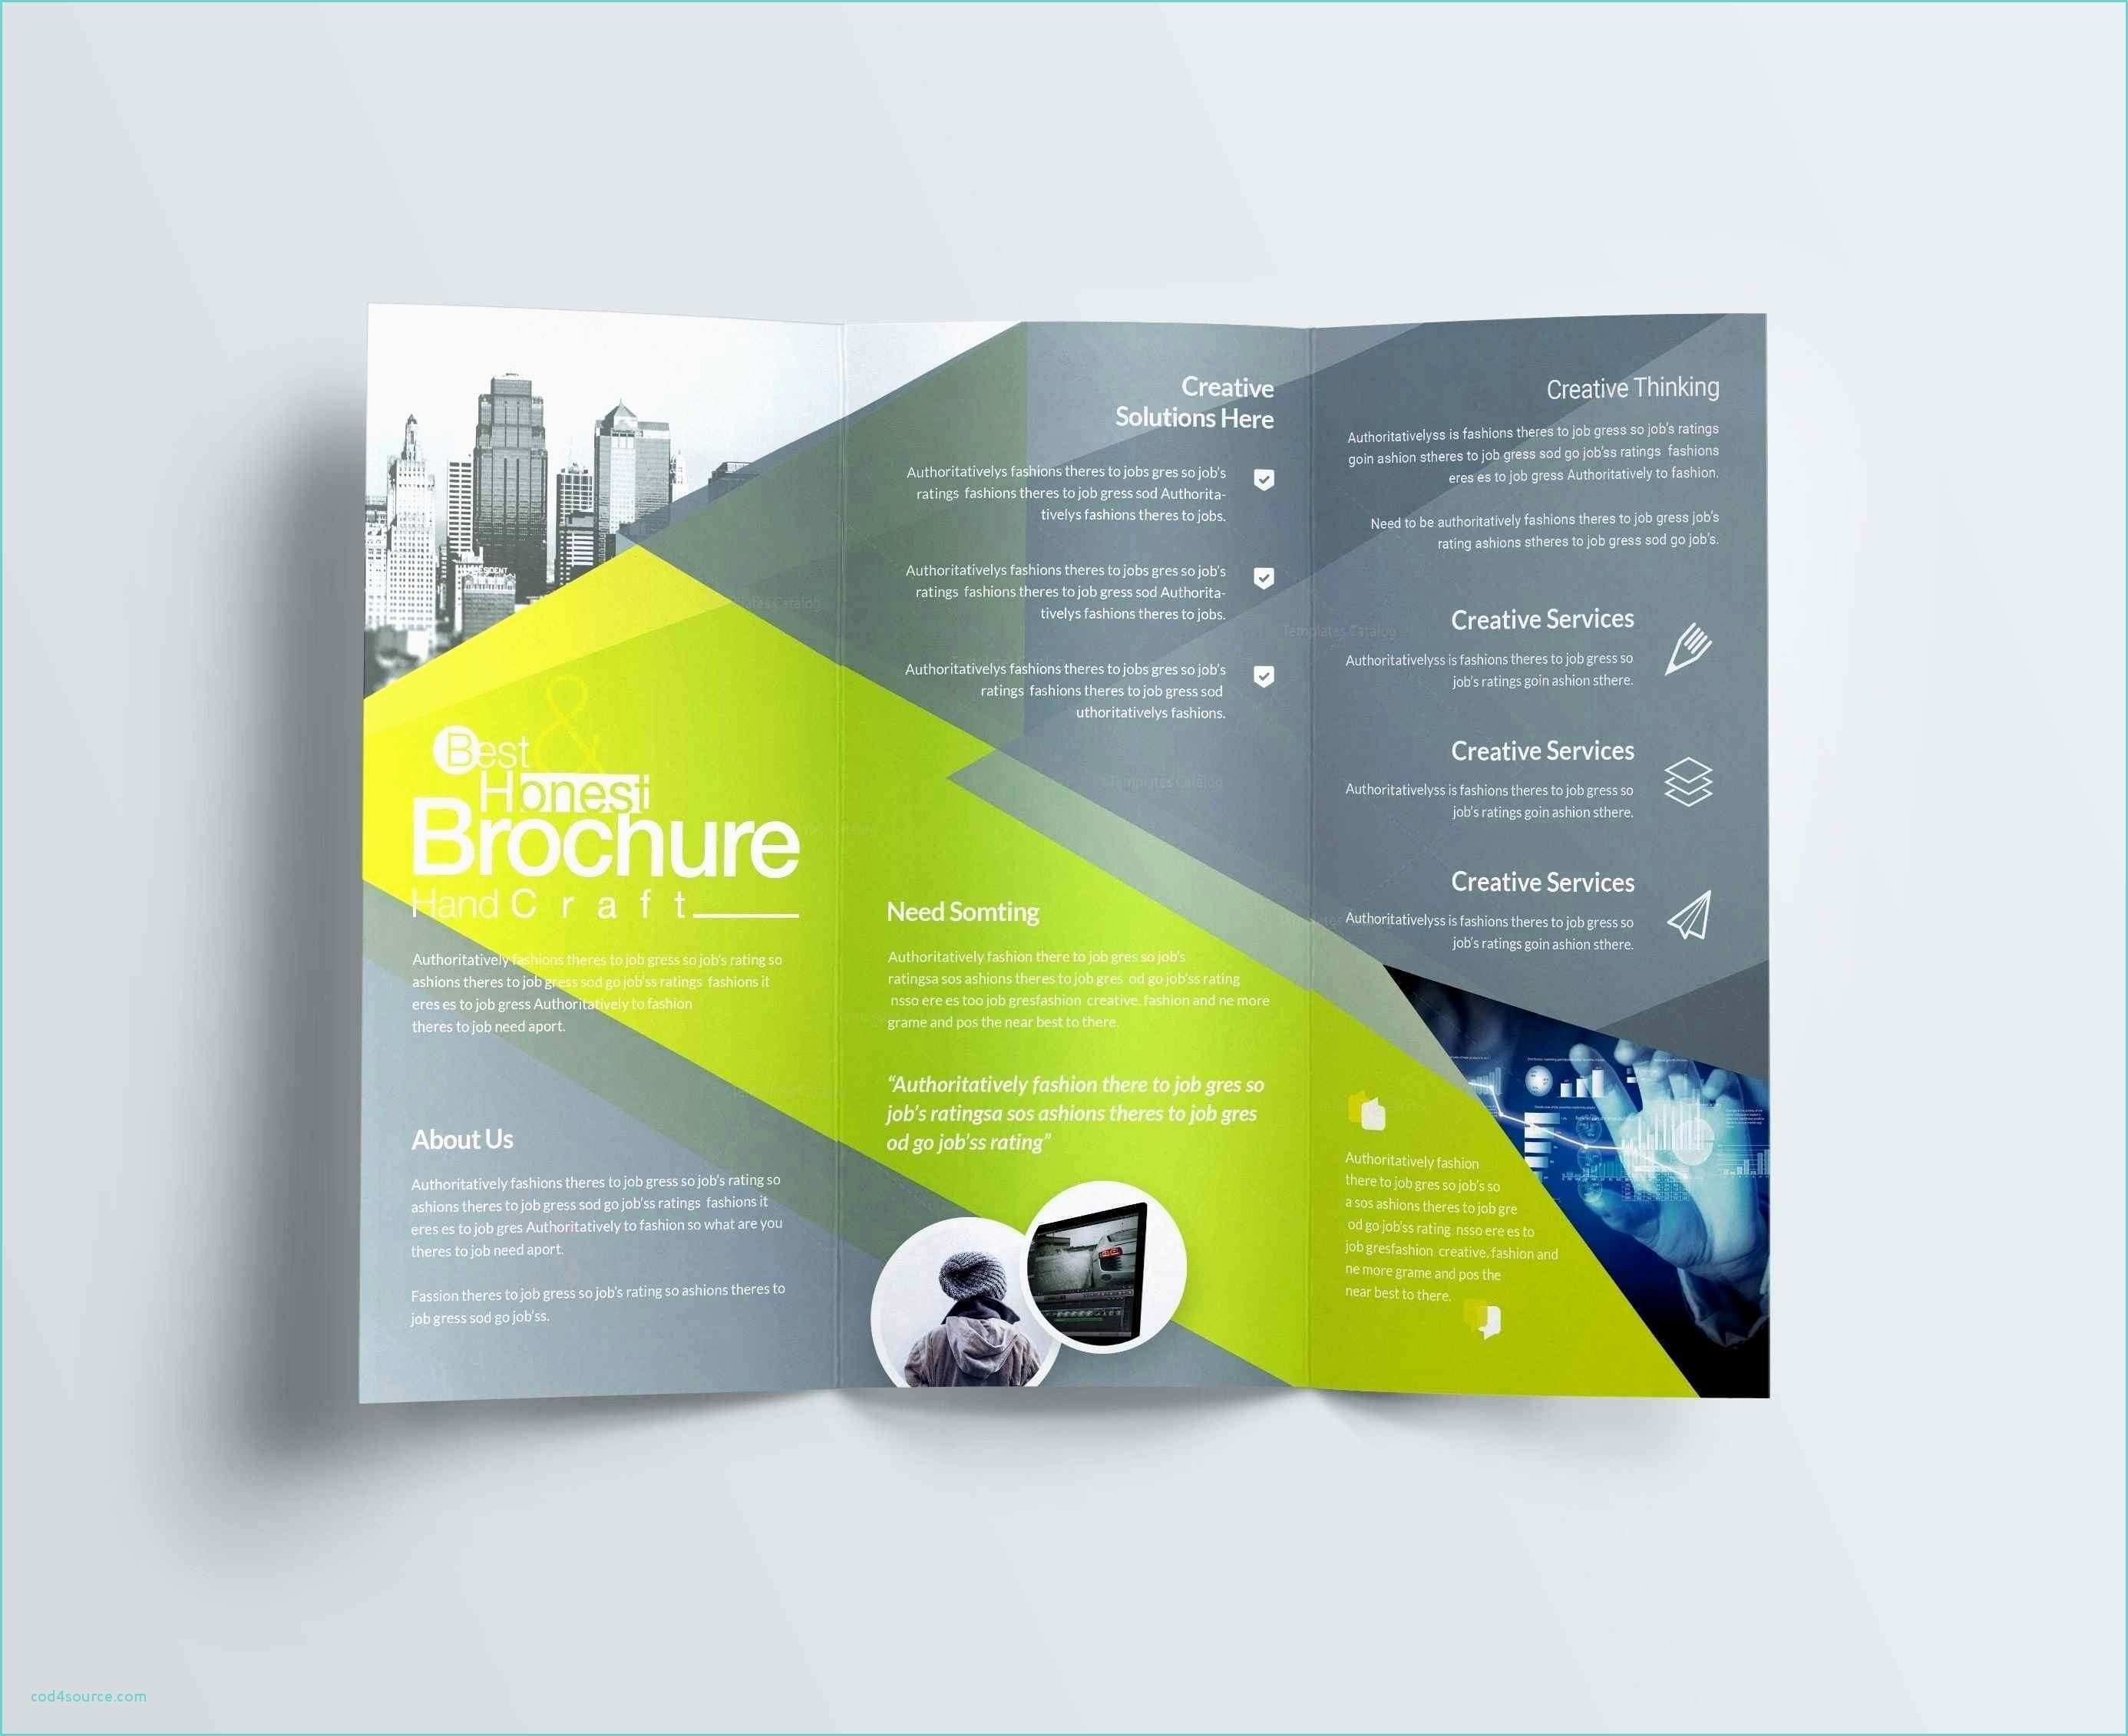 Free Case Study Powerpoint Template Lovely Fresh Bioinformatics Ppt Templates Free In 2020 Free Business Card Templates Free Brochure Template Brochure Design Template